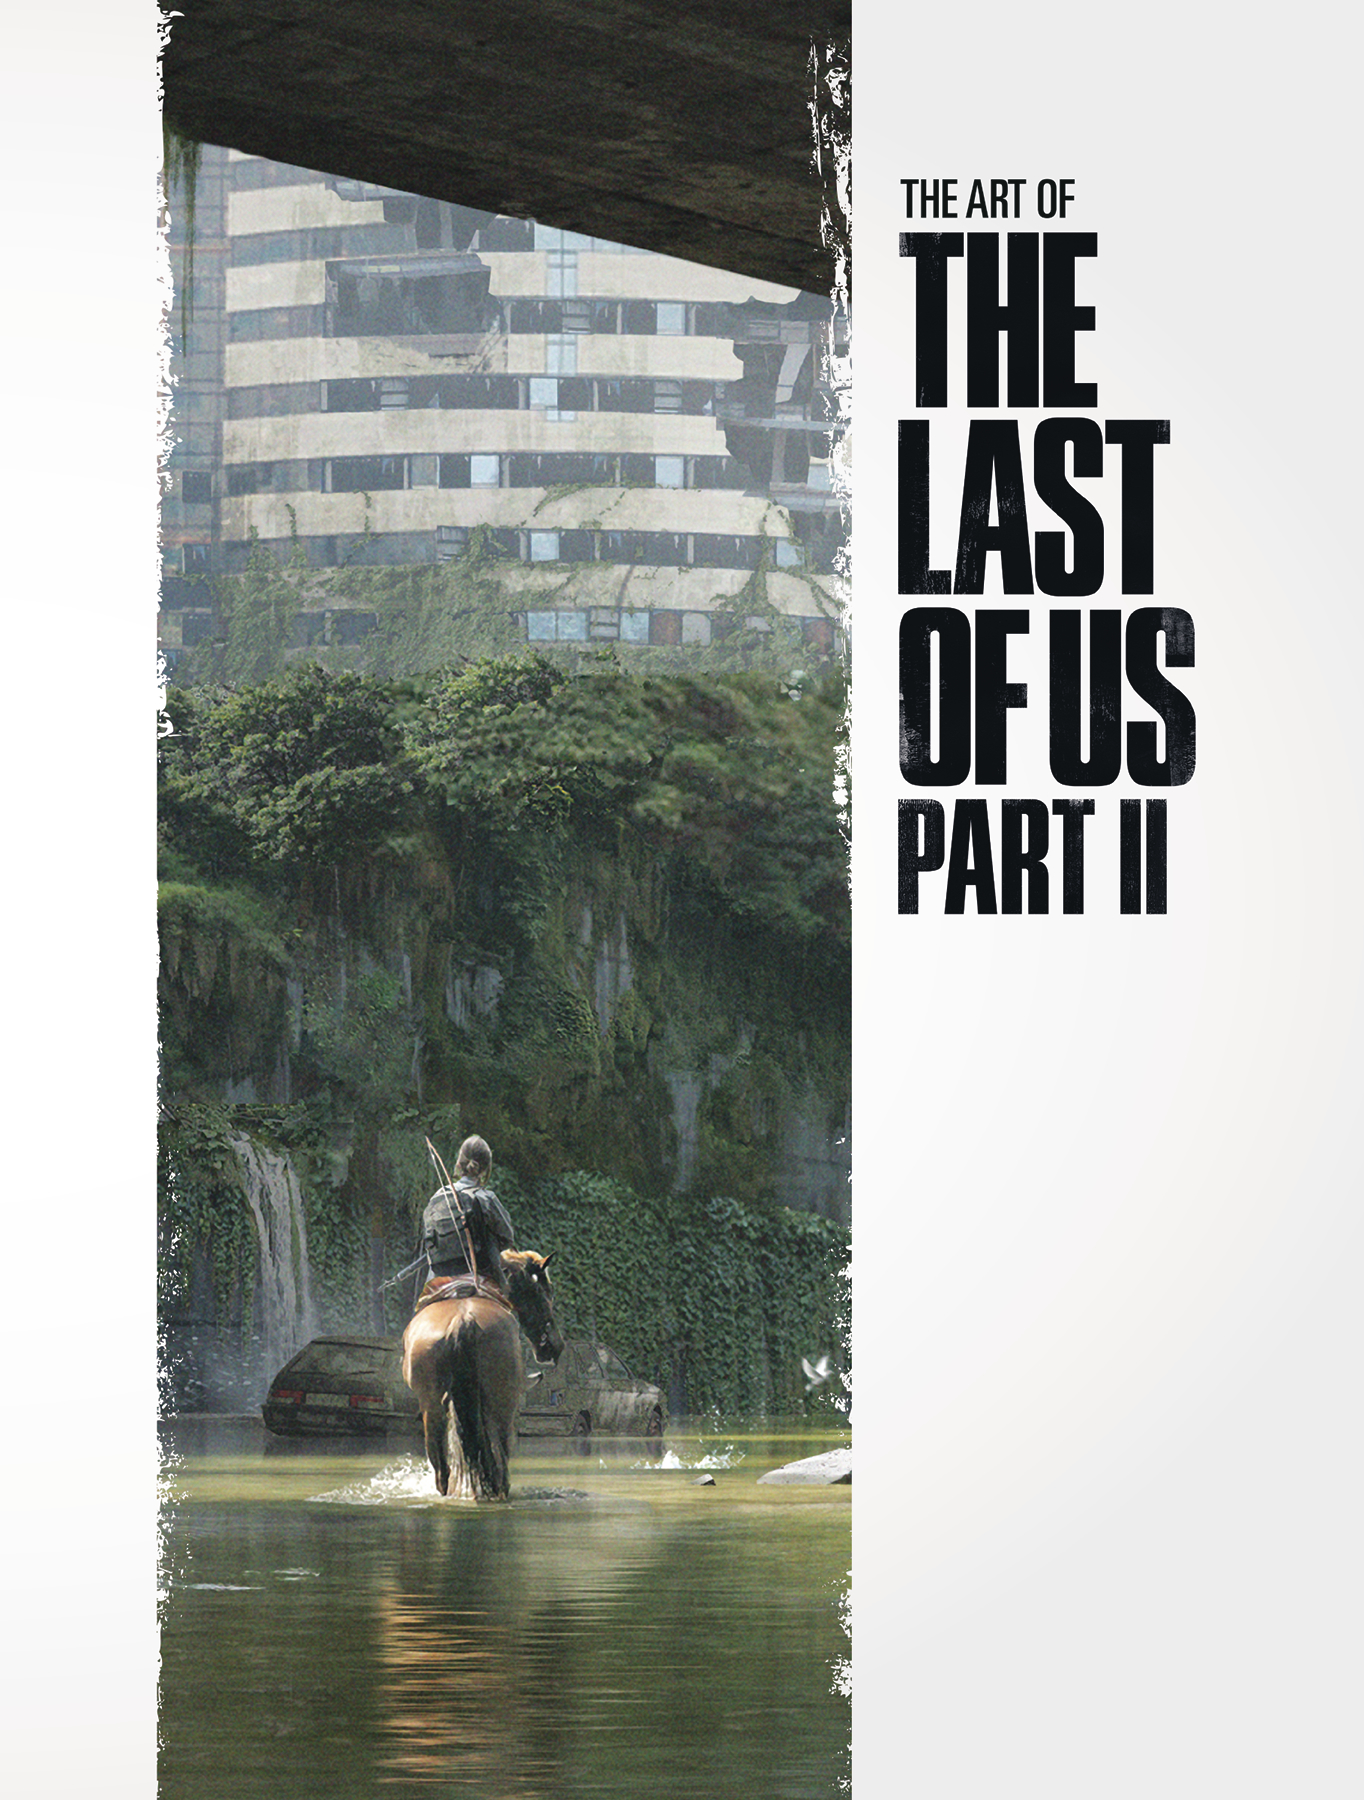 ART OF THE LAST OF US PART II HC (AUG198625)